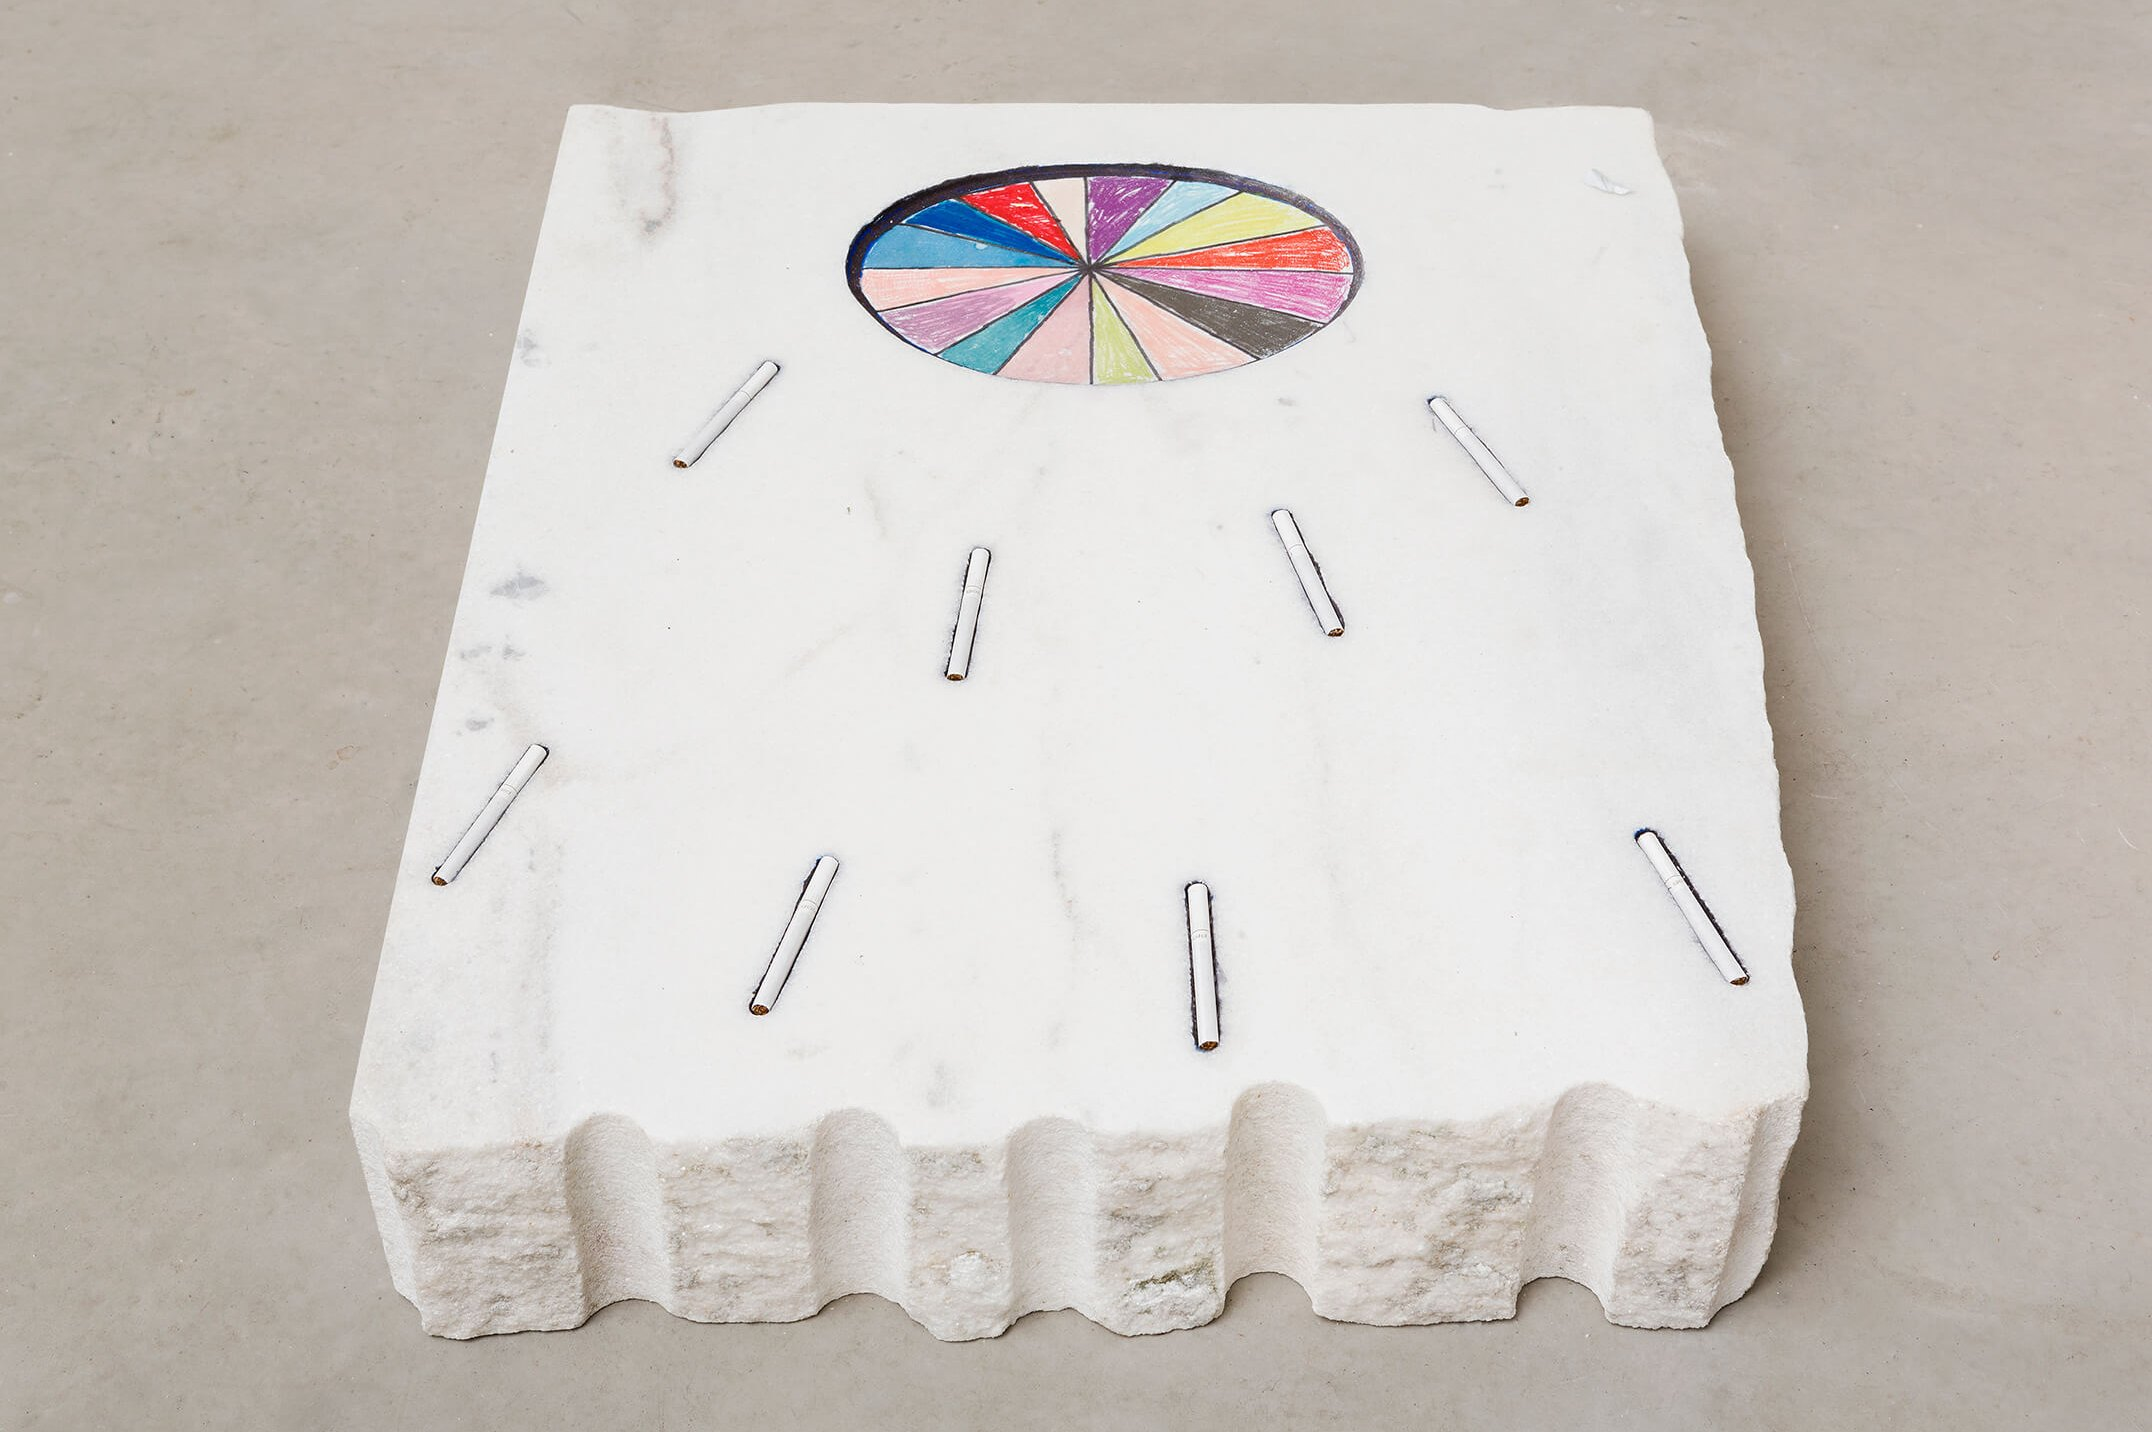 Adriano Costa,<em>Caribe</em>, 2015, graphite and cigaretts on marble block, 14 × 69 × 60 cm - Mendes Wood DM